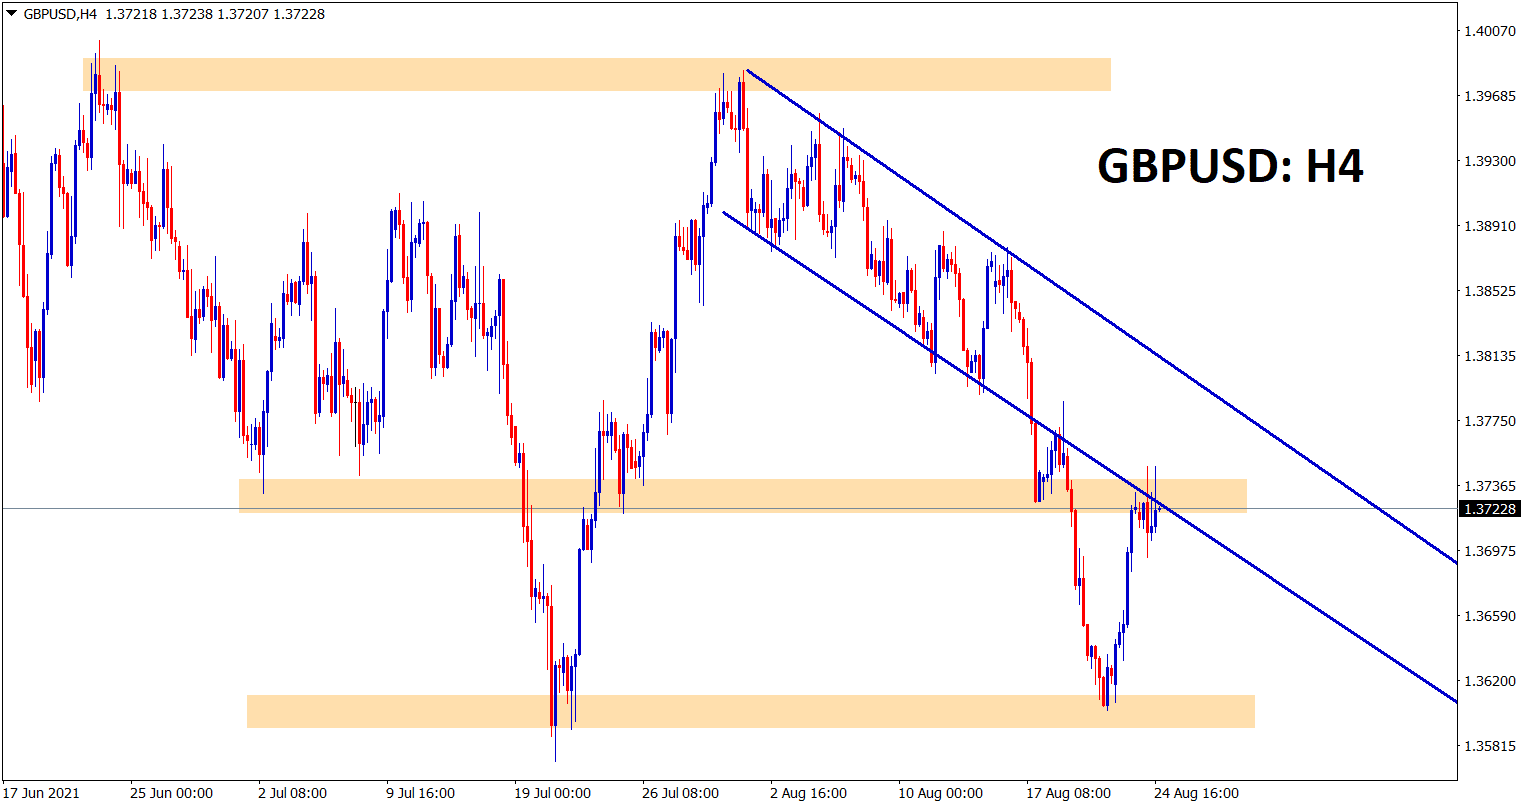 GBPUSD again hits the previous support area and the retest zone of the broken descending channel